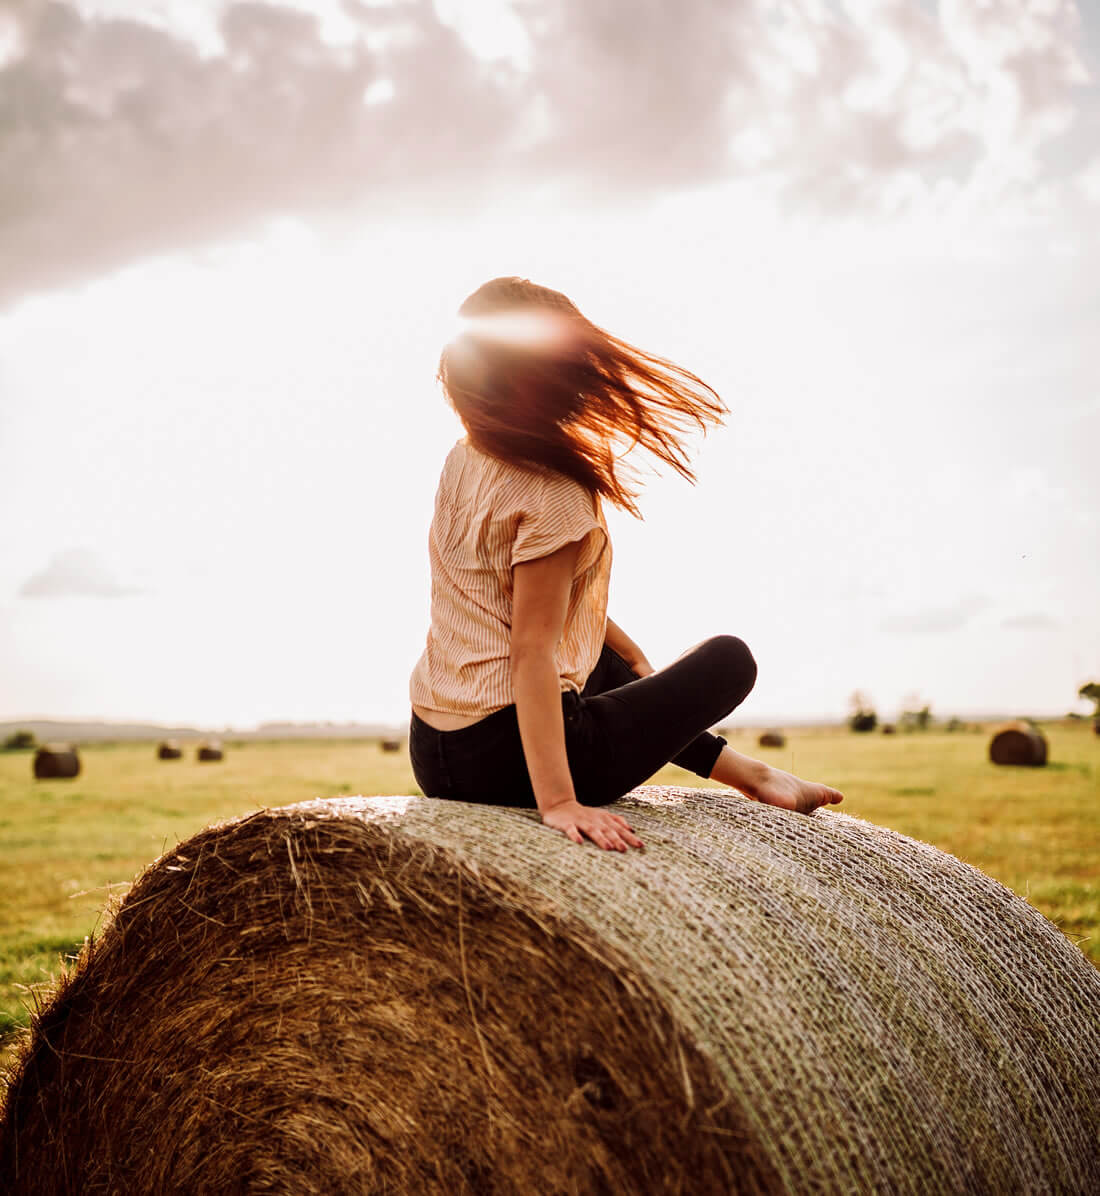 Woman sitting in the nature on hay stack to practice self love